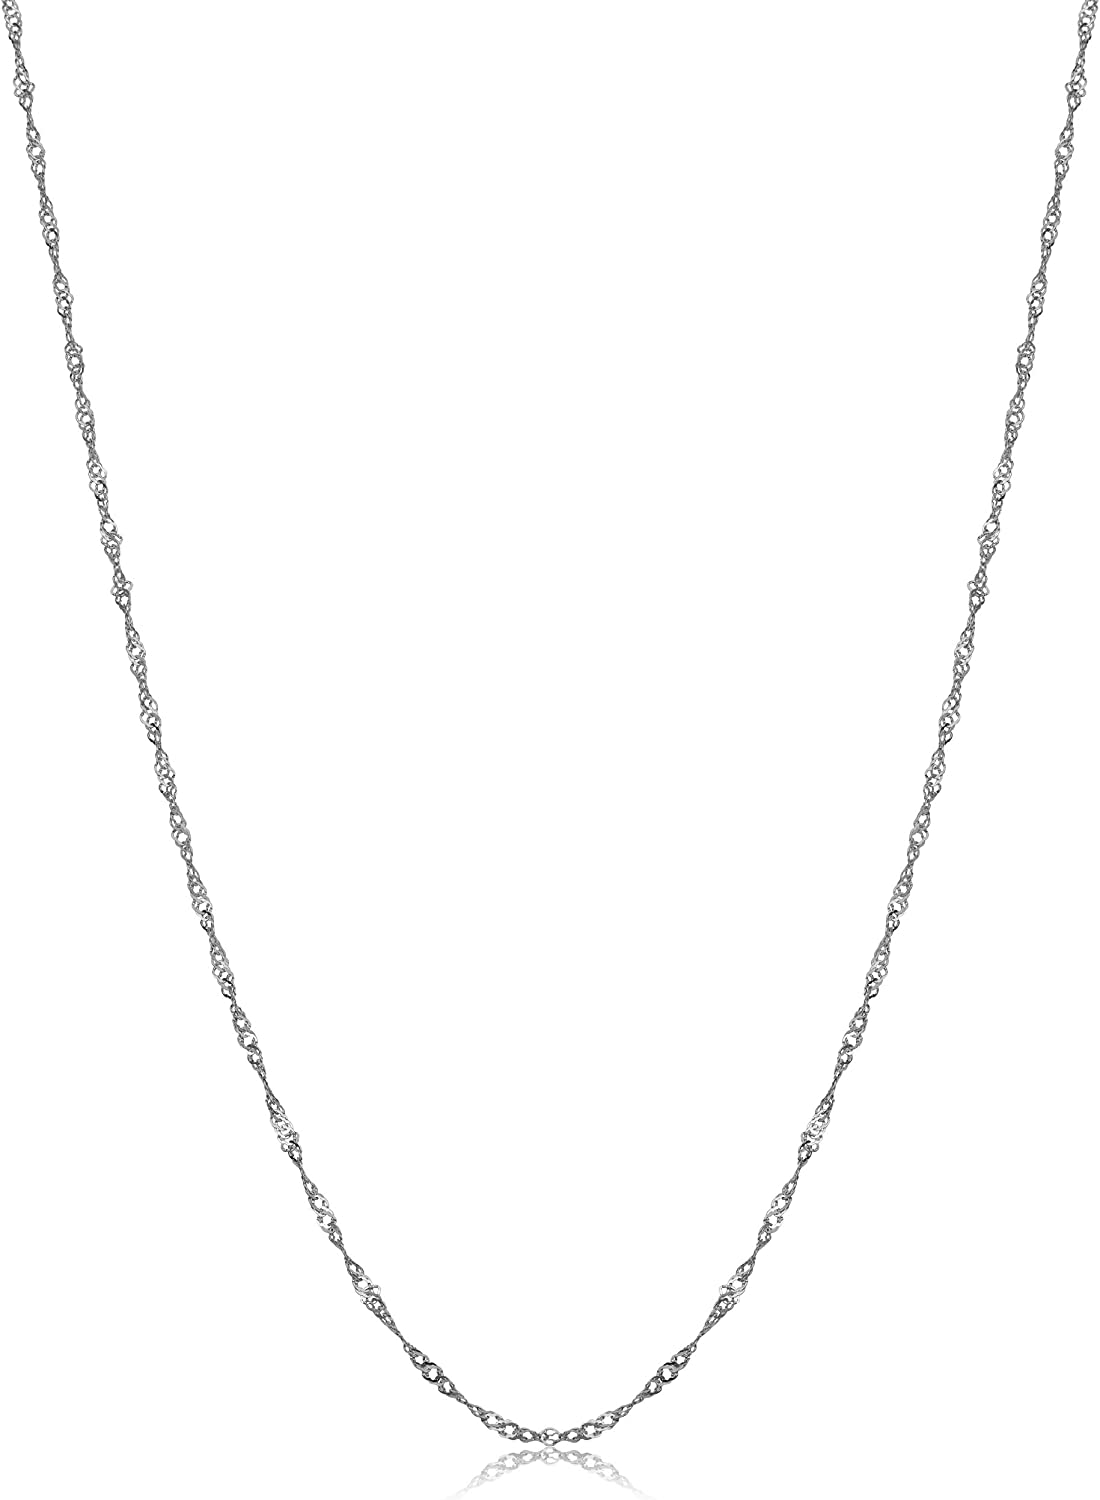 14k White Gold 0.9 mm Singapore Chain Necklace for Women